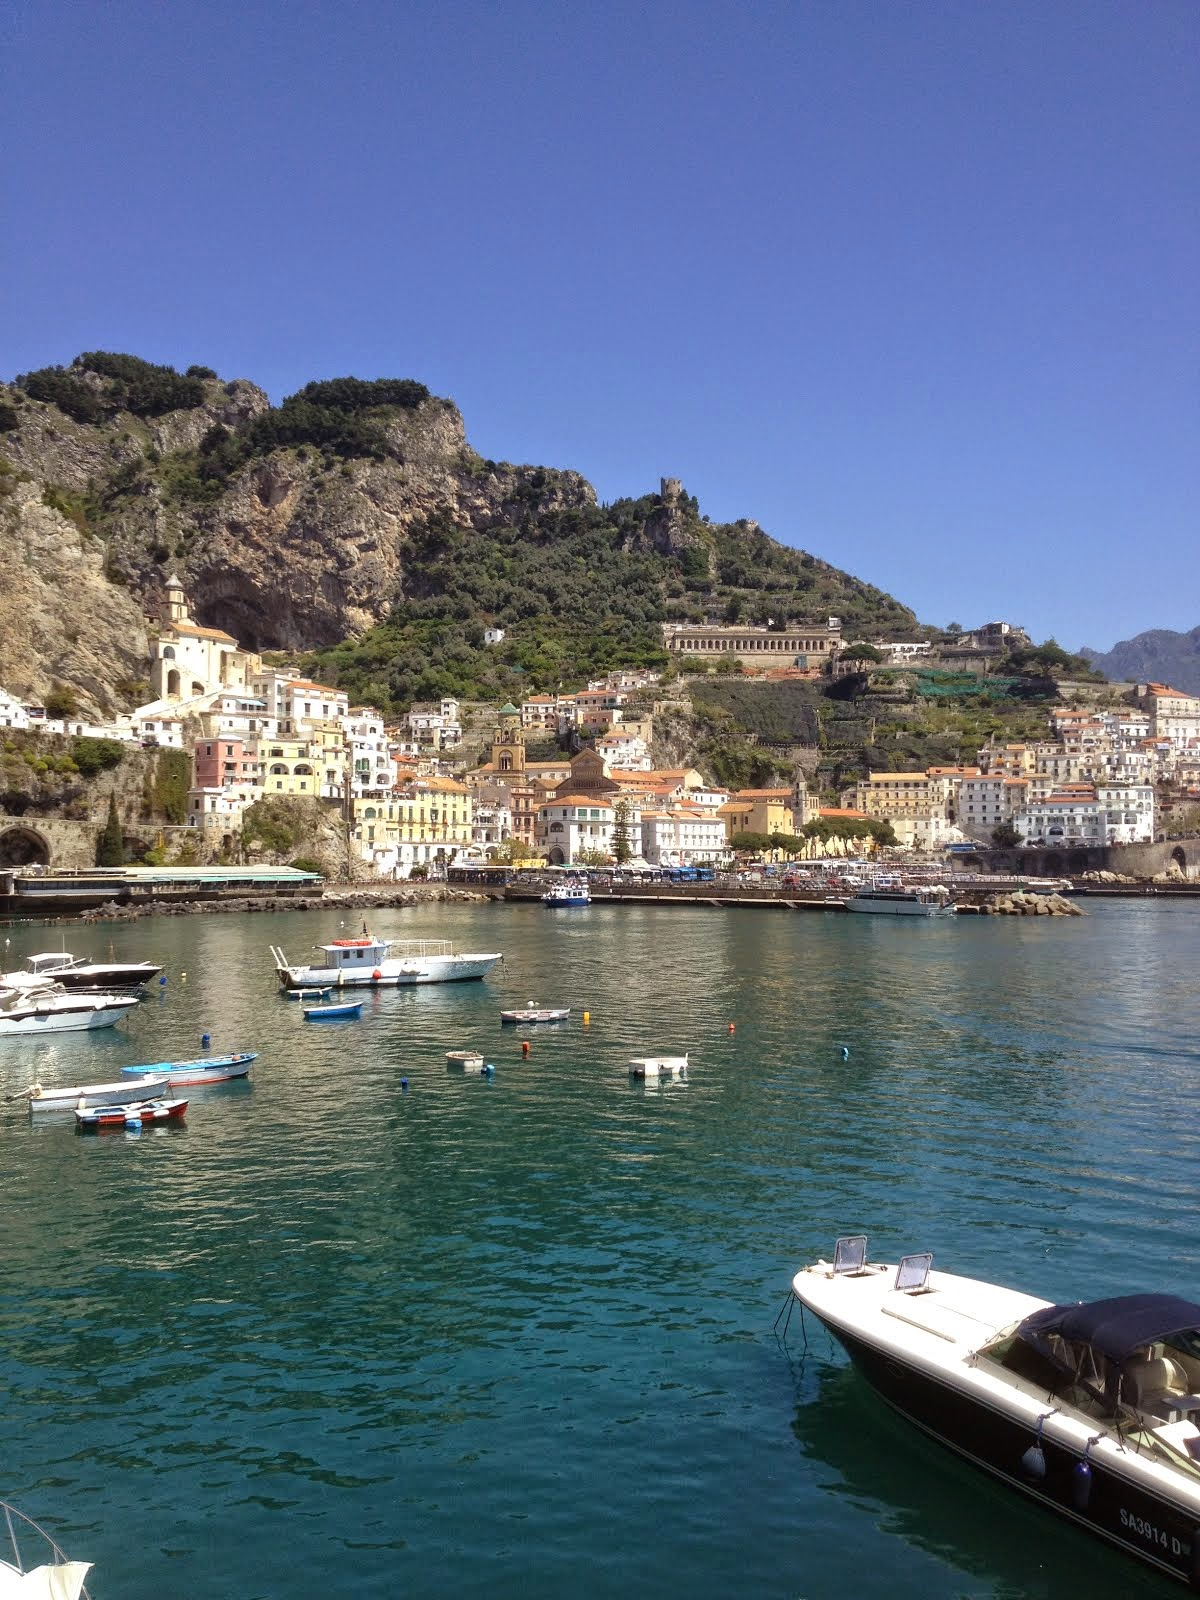 Boating from the town of Amalfi